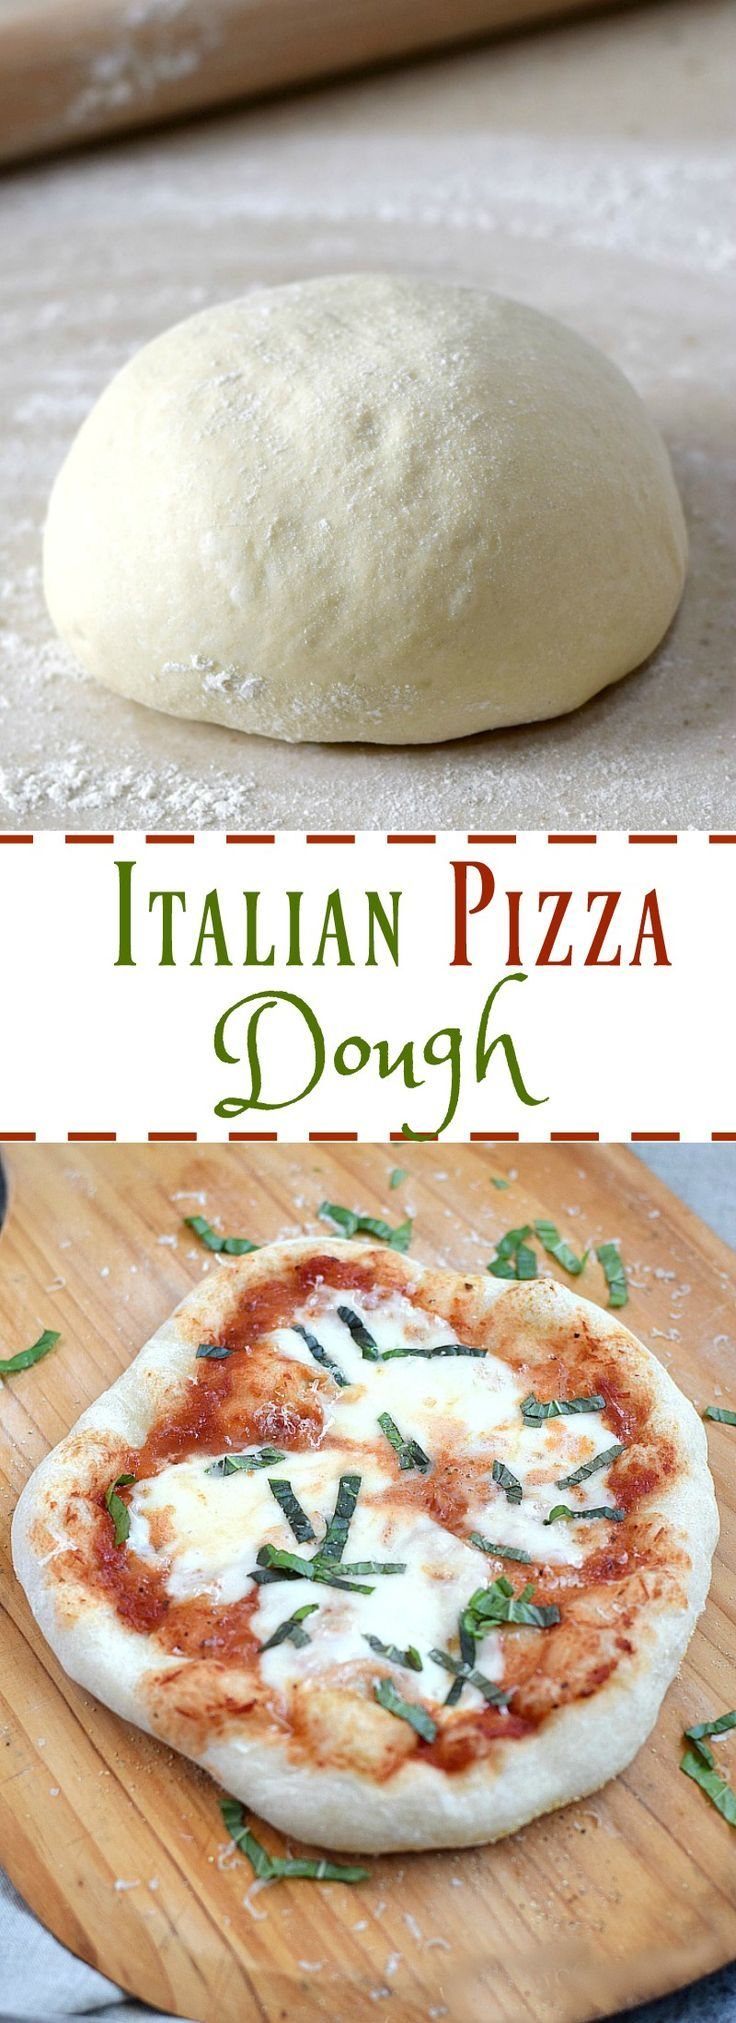 A traditional Italian Pizza Dough recipe using Tipo 00 Pizzeria Flour for a light and airy crust with a crispy exterior for the ultimate pizza experience | http://cookingwithcurls.com